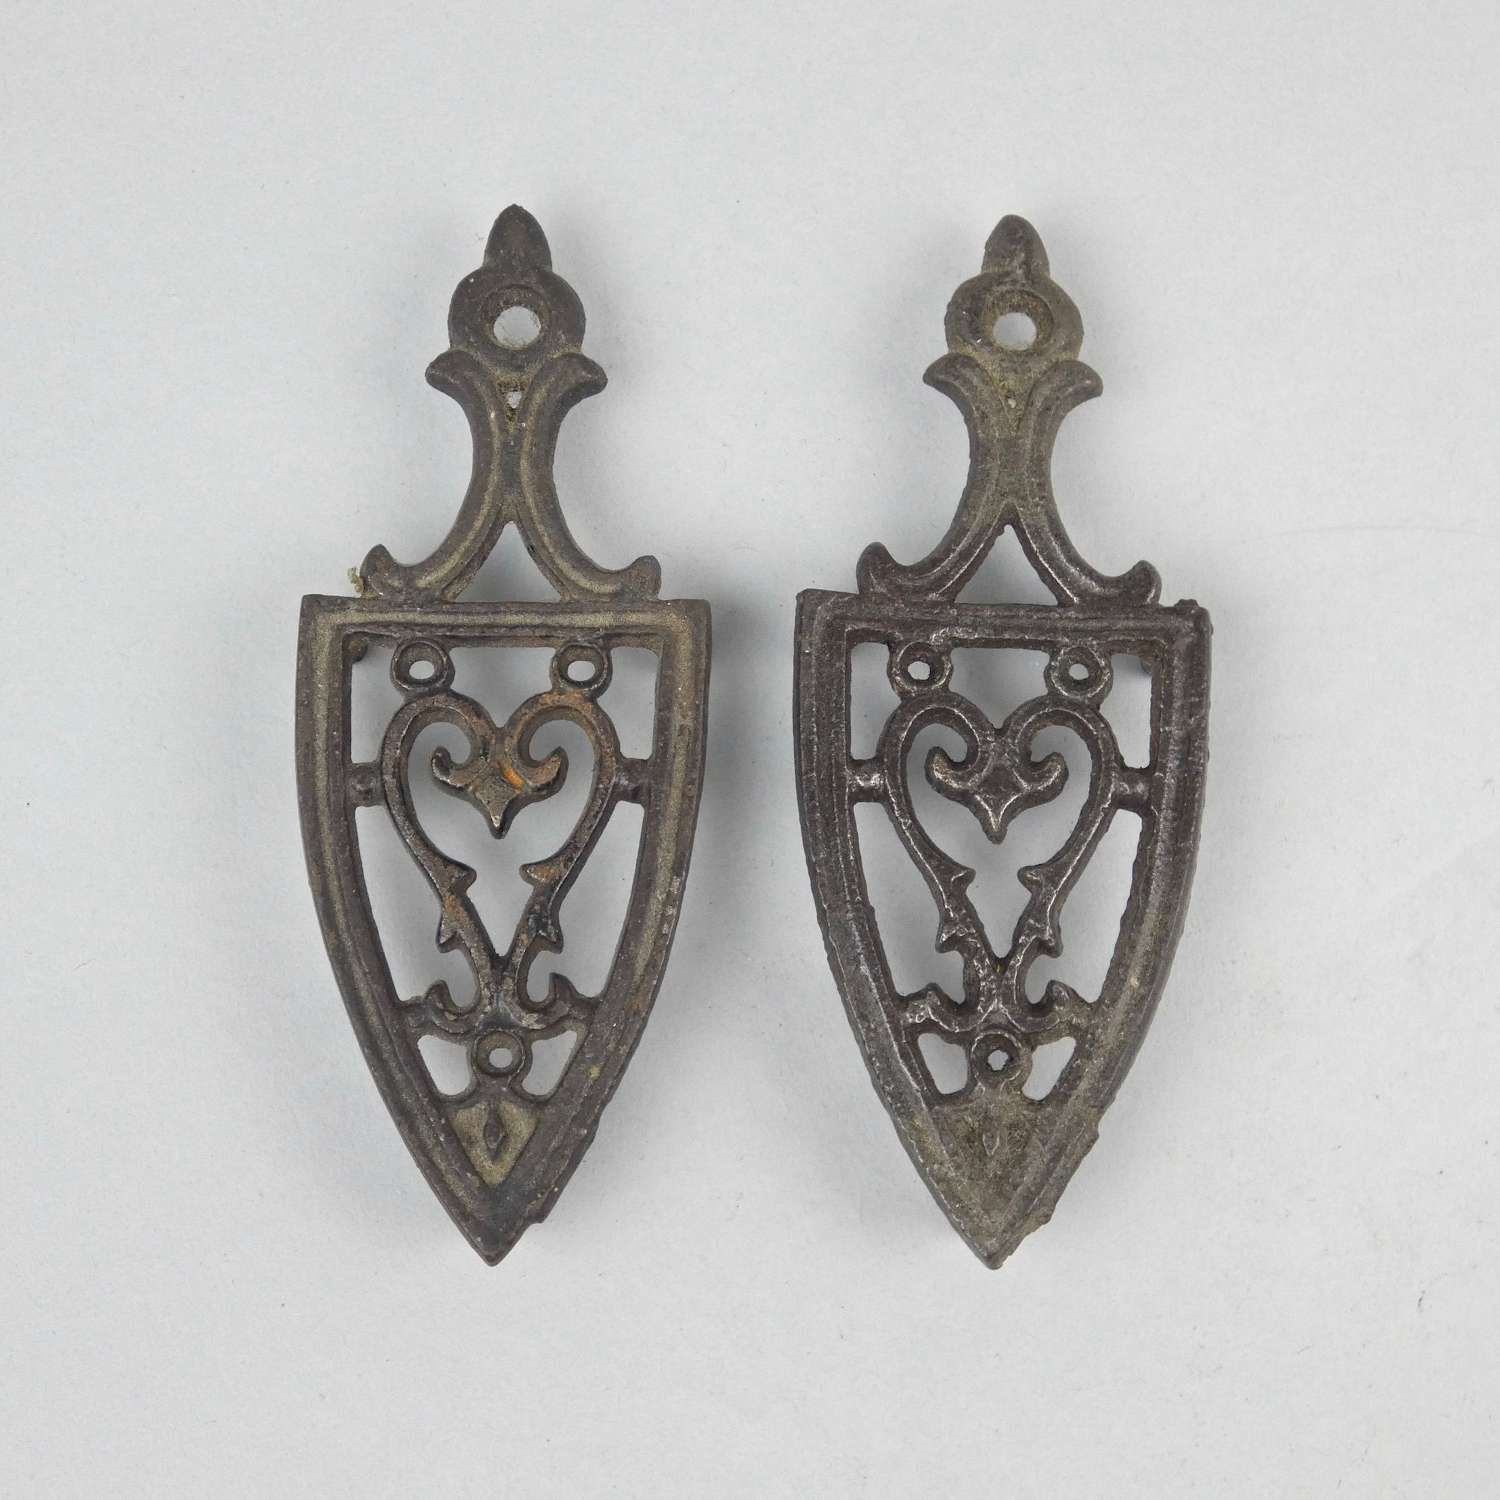 Miniature cast iron, heart design, trivets.